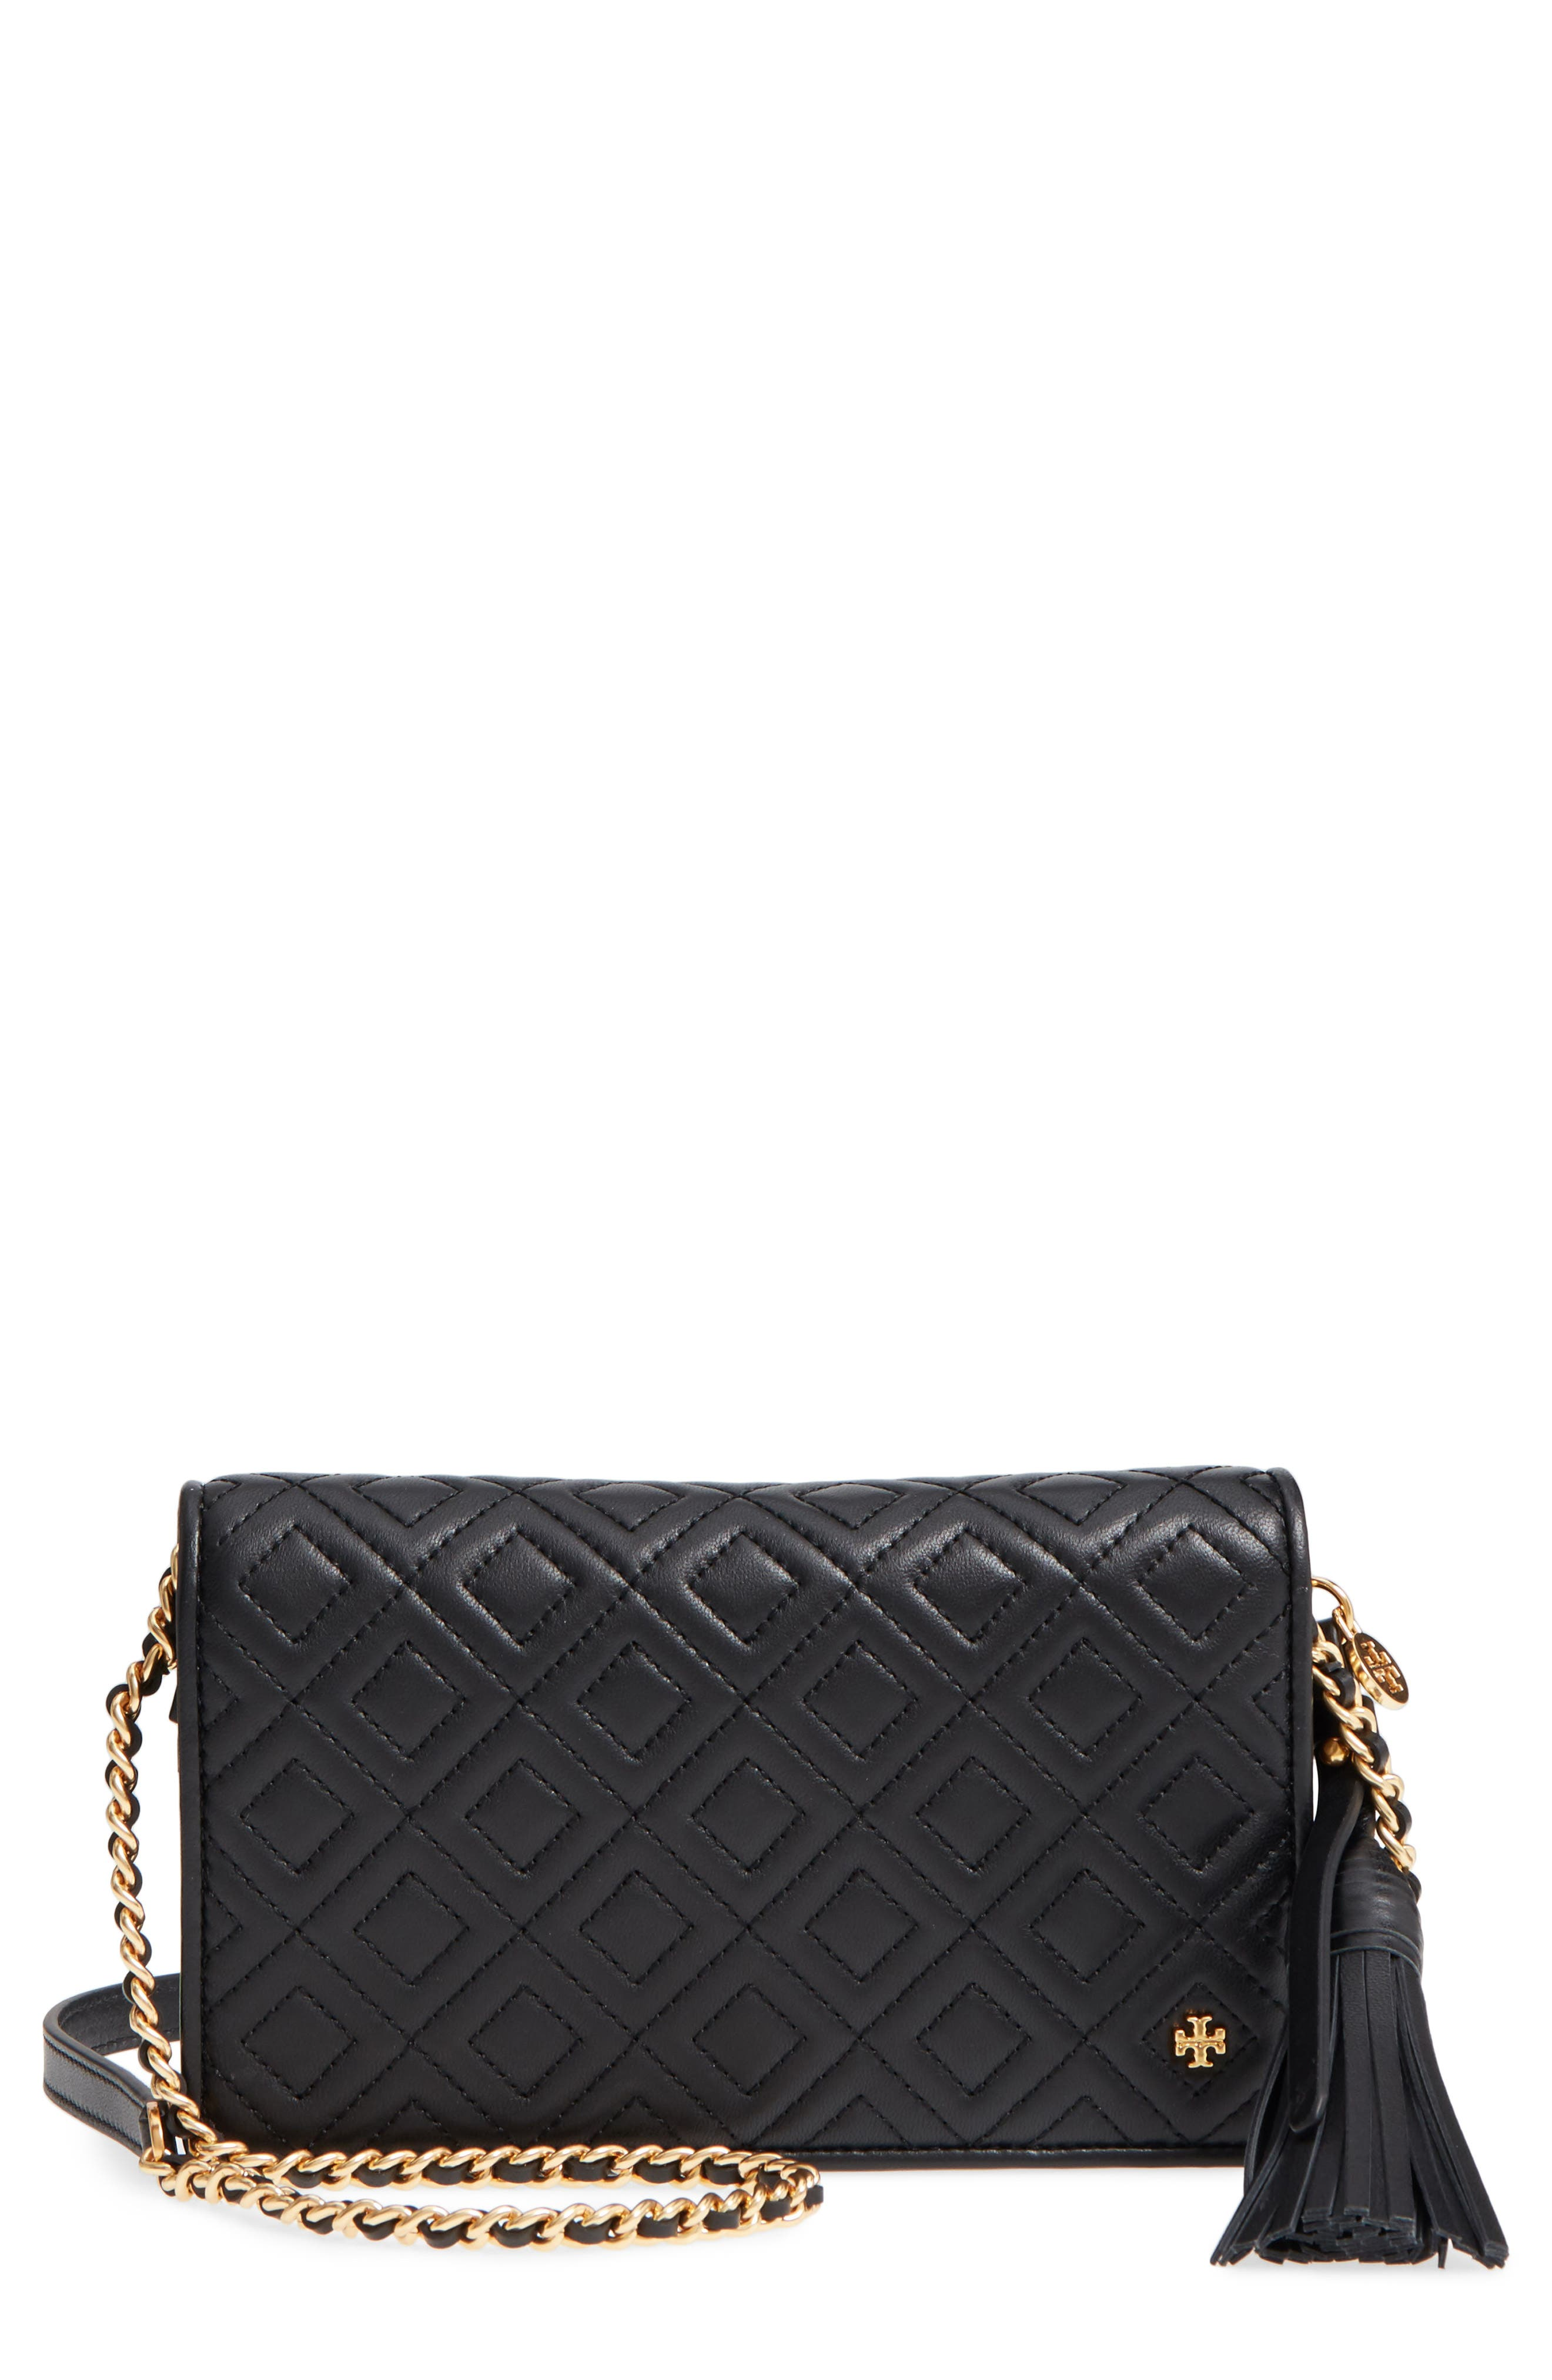 TORY BURCH,                             Fleming Leather Wallet/Crossbody,                             Main thumbnail 1, color,                             001